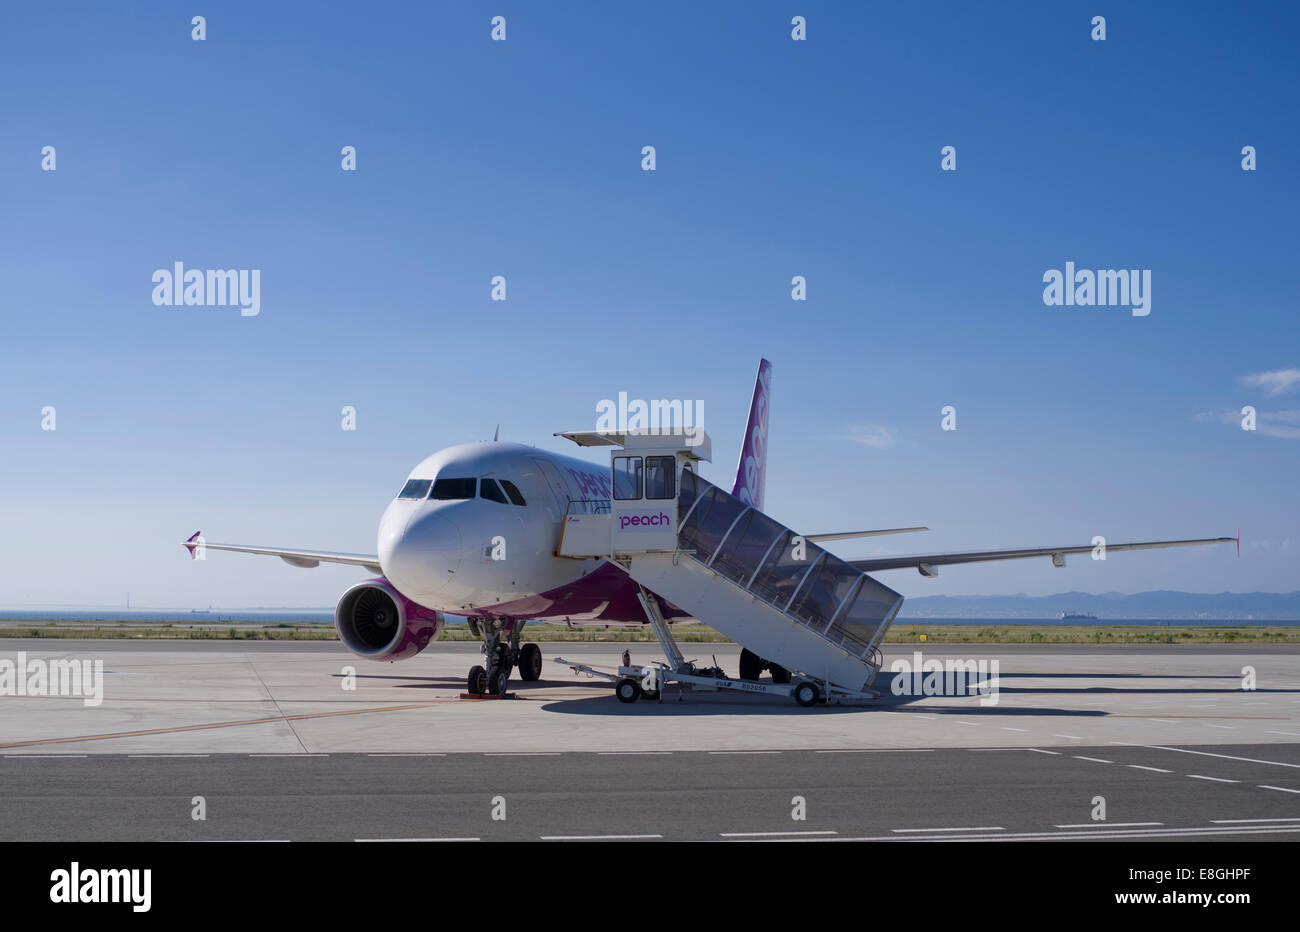 Peach Aviation, Japanese Low cost carrier airline based in Osaka, Japan - Stock Image